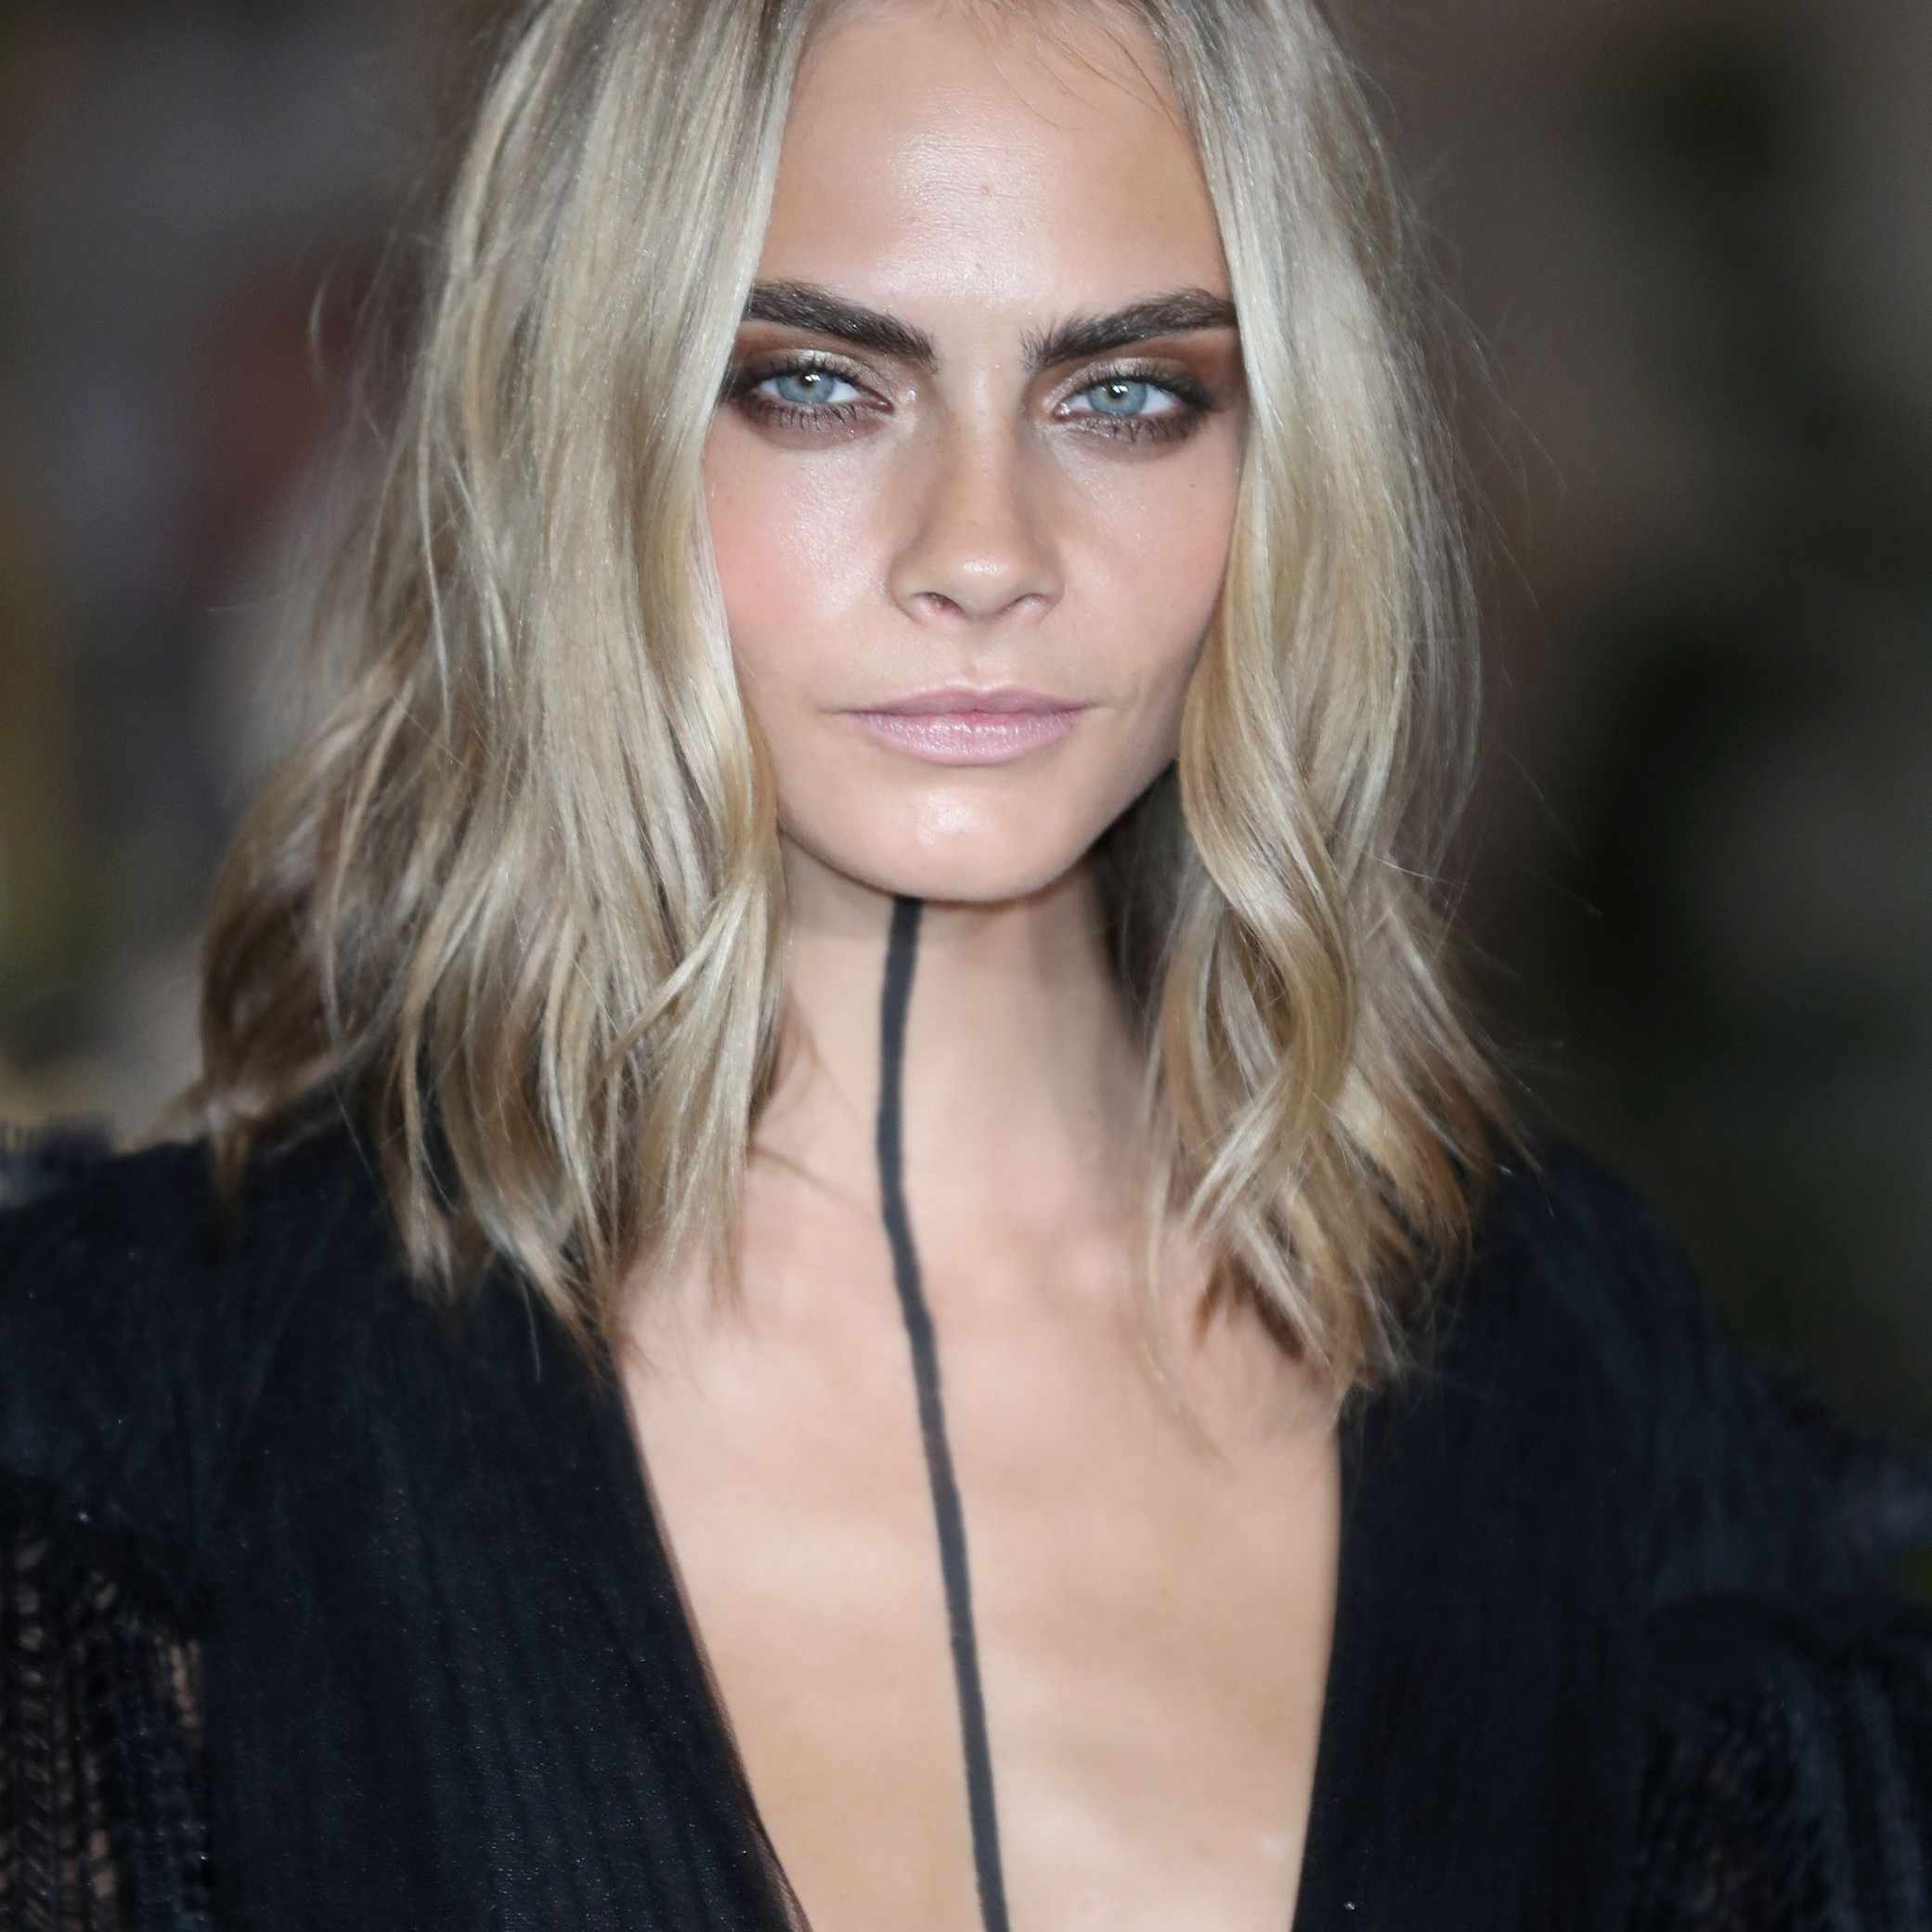 Ash Blonde Hair Inspiration 30 Ways To Wear The Trend